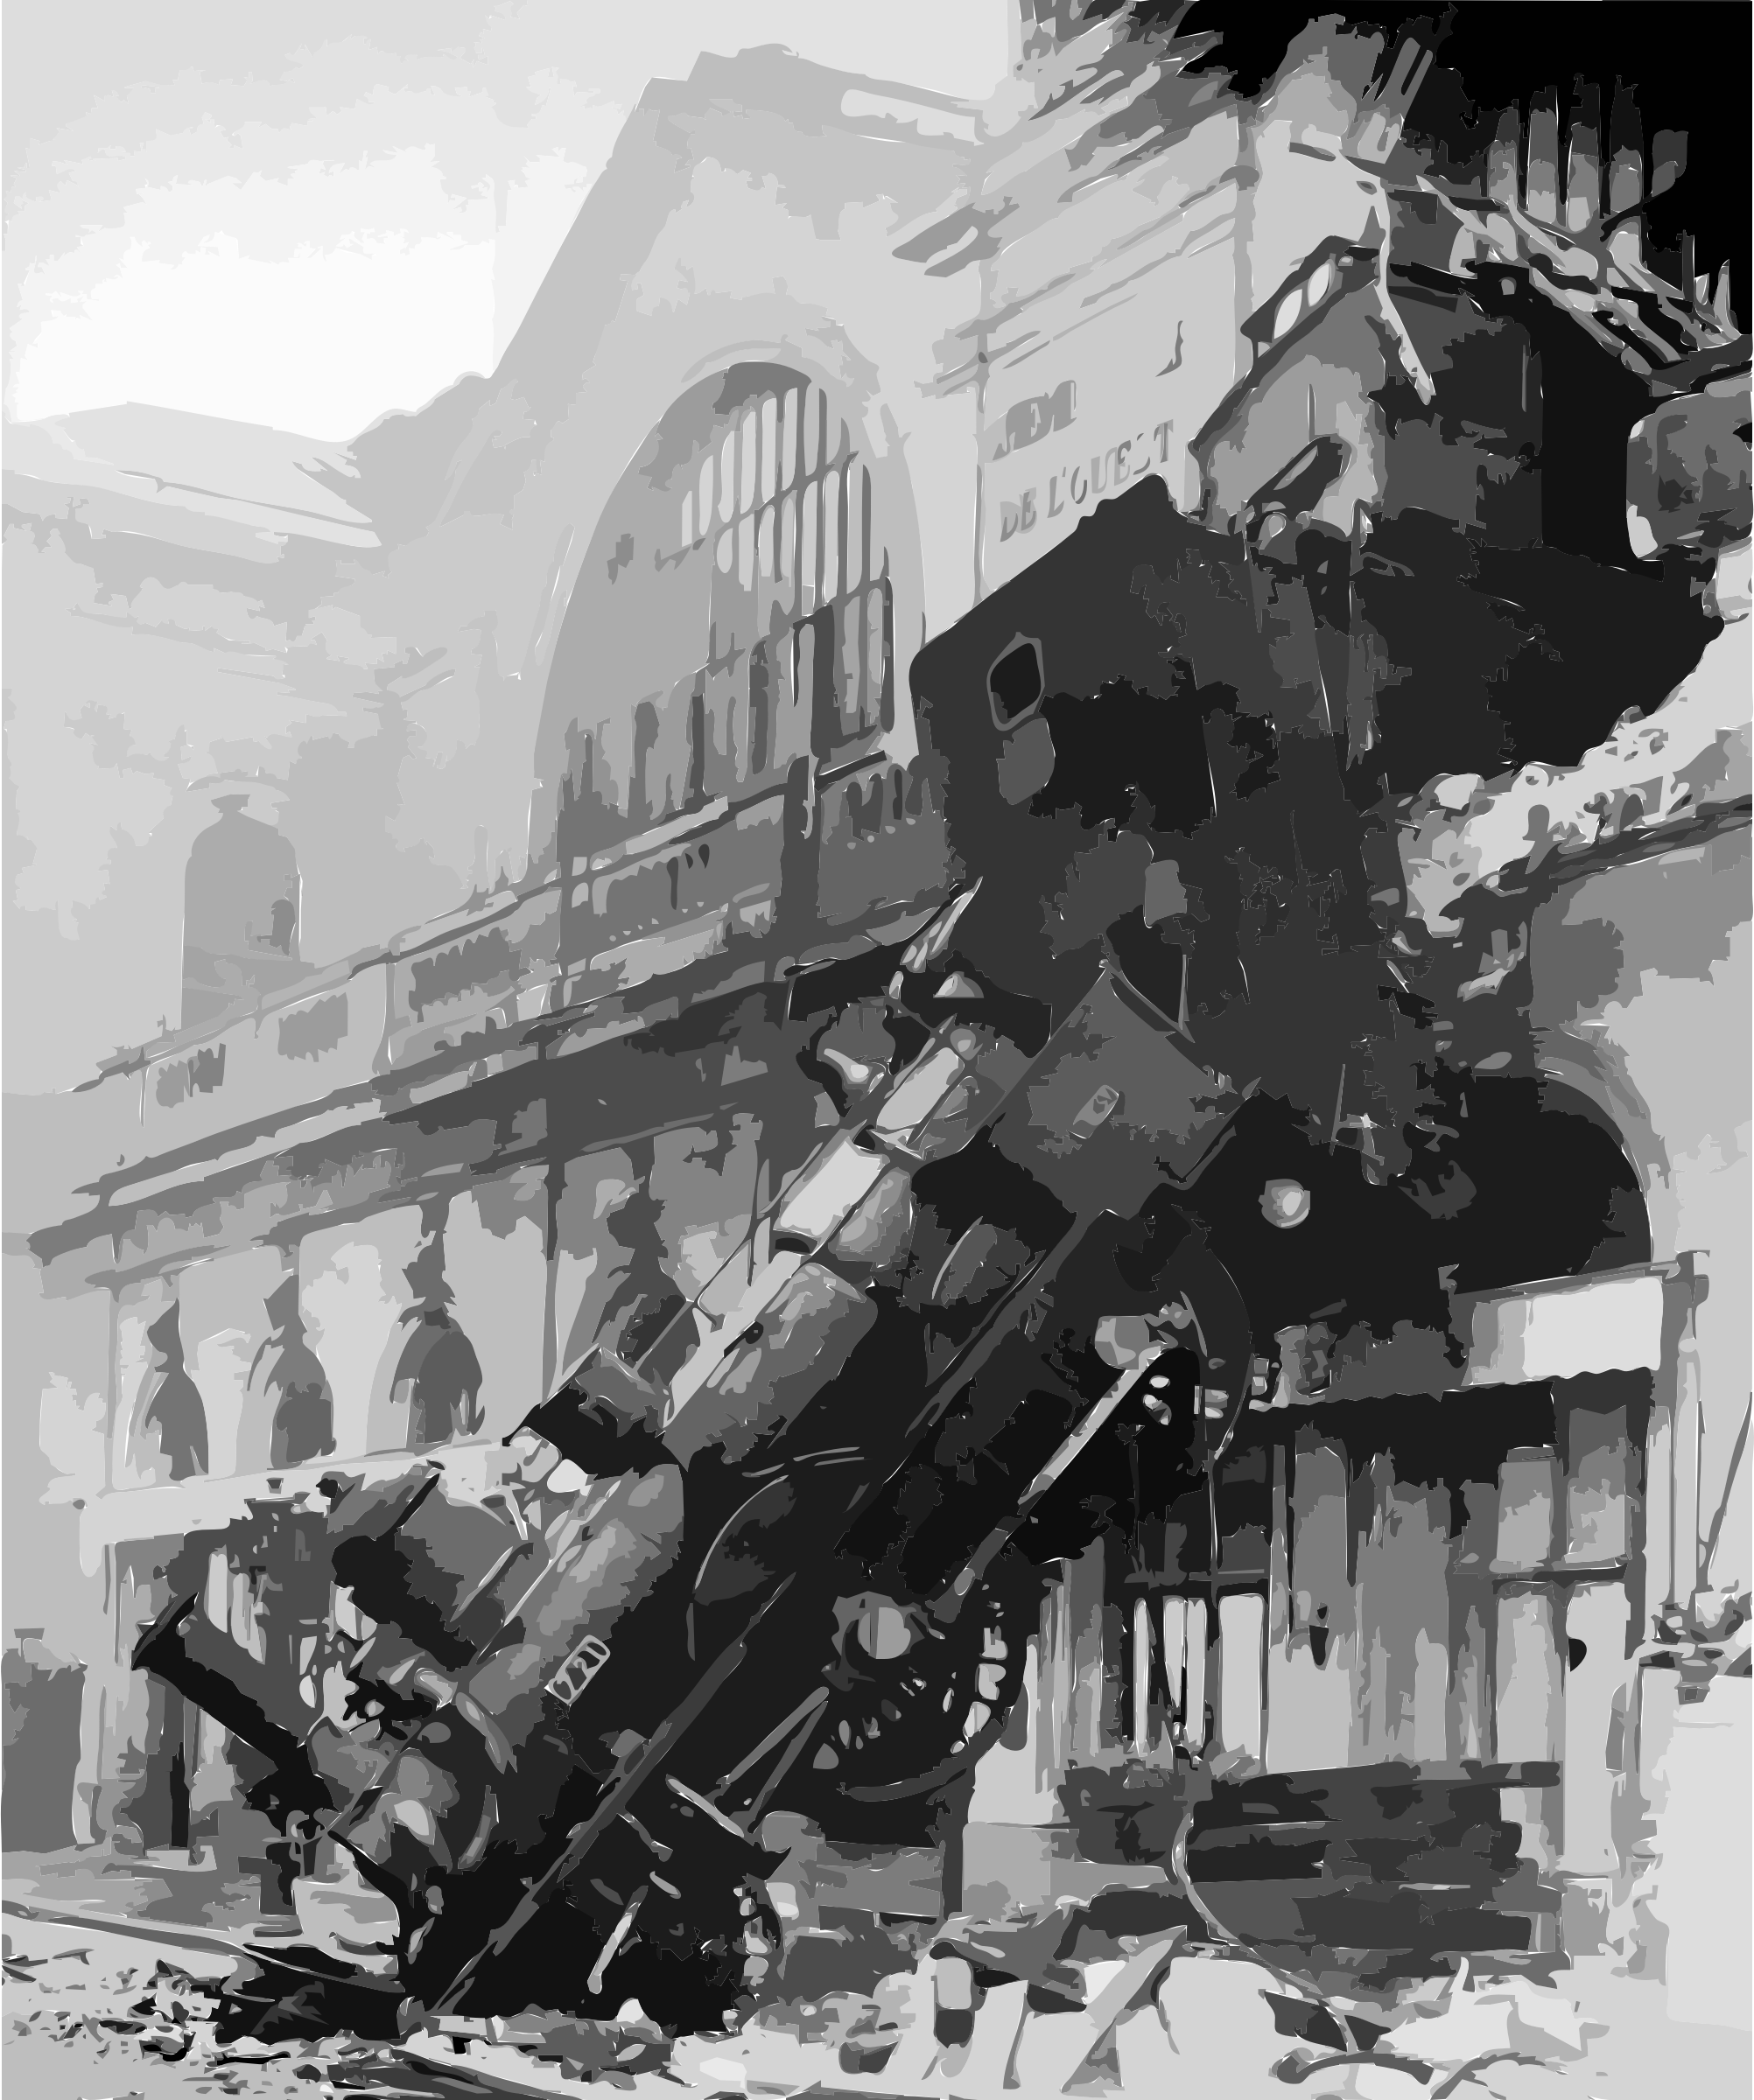 Train wreck at Montparnasse 1895 by 5n9sst+earkddiows40g